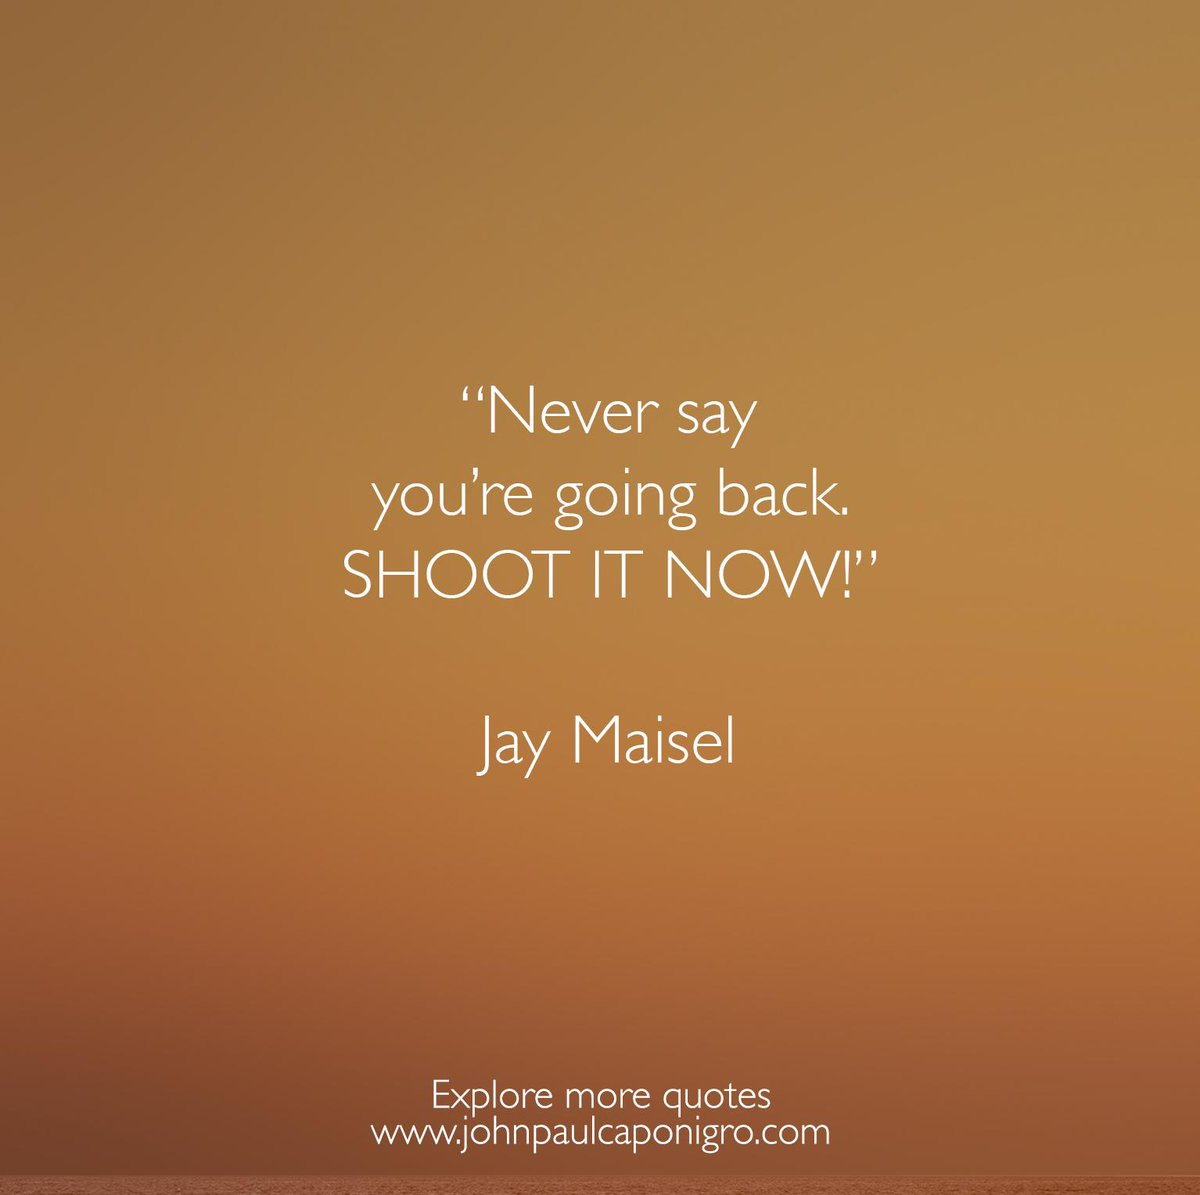 Insight from photographer Jay Maisel. #quotes #photography http://t.co/EtBVVTR9tz